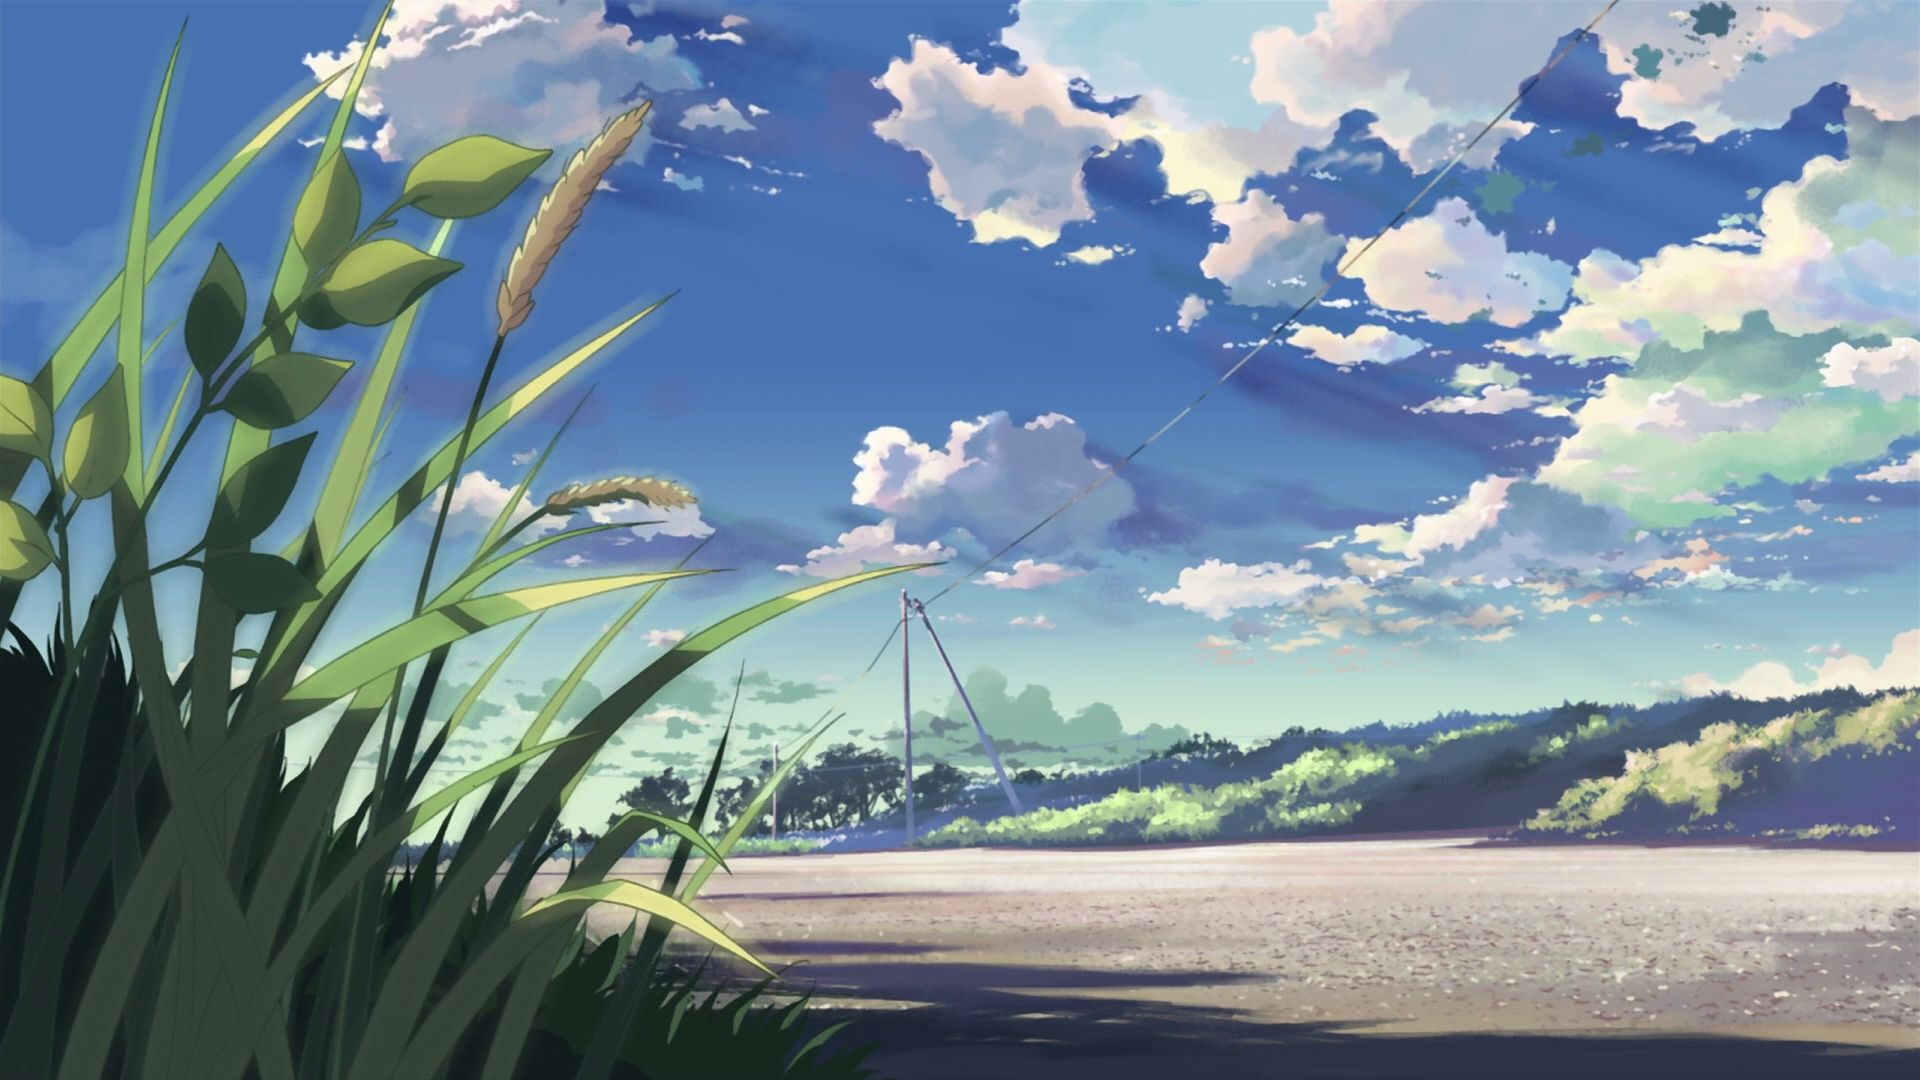 anime scenery wallpaper 1920x1080 pictures 5 | projects to try